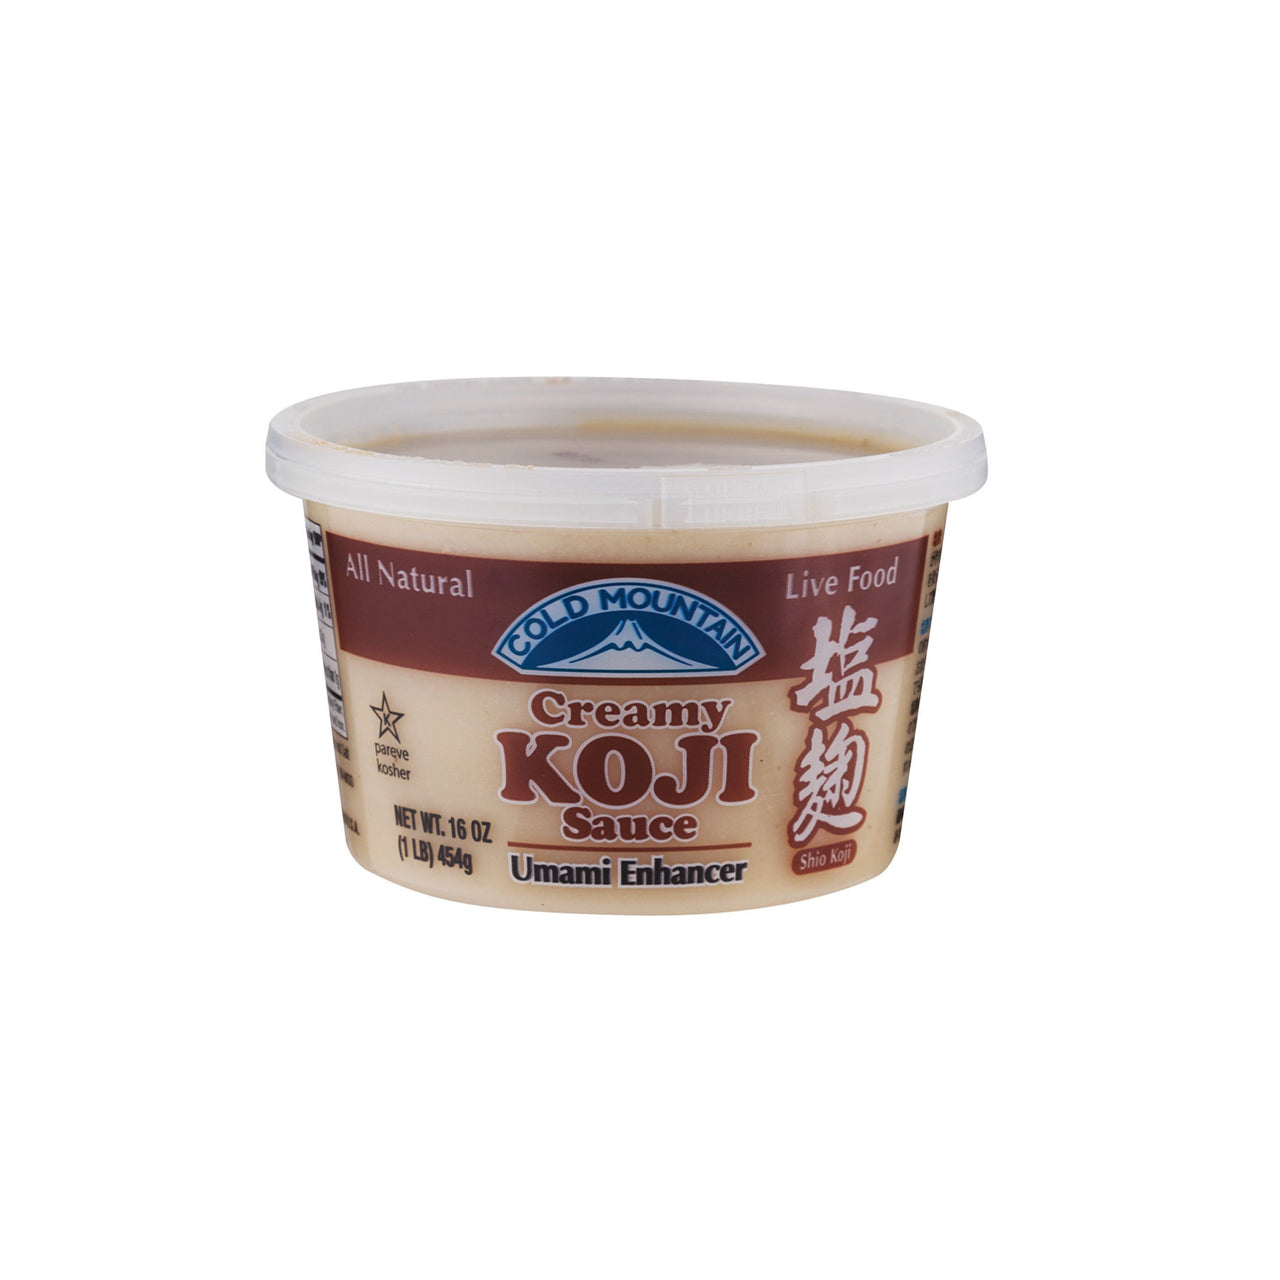 Cold Mountain Creamy Shio Koji Umami Enhancer 1lb (454g) (SKU: 20313)